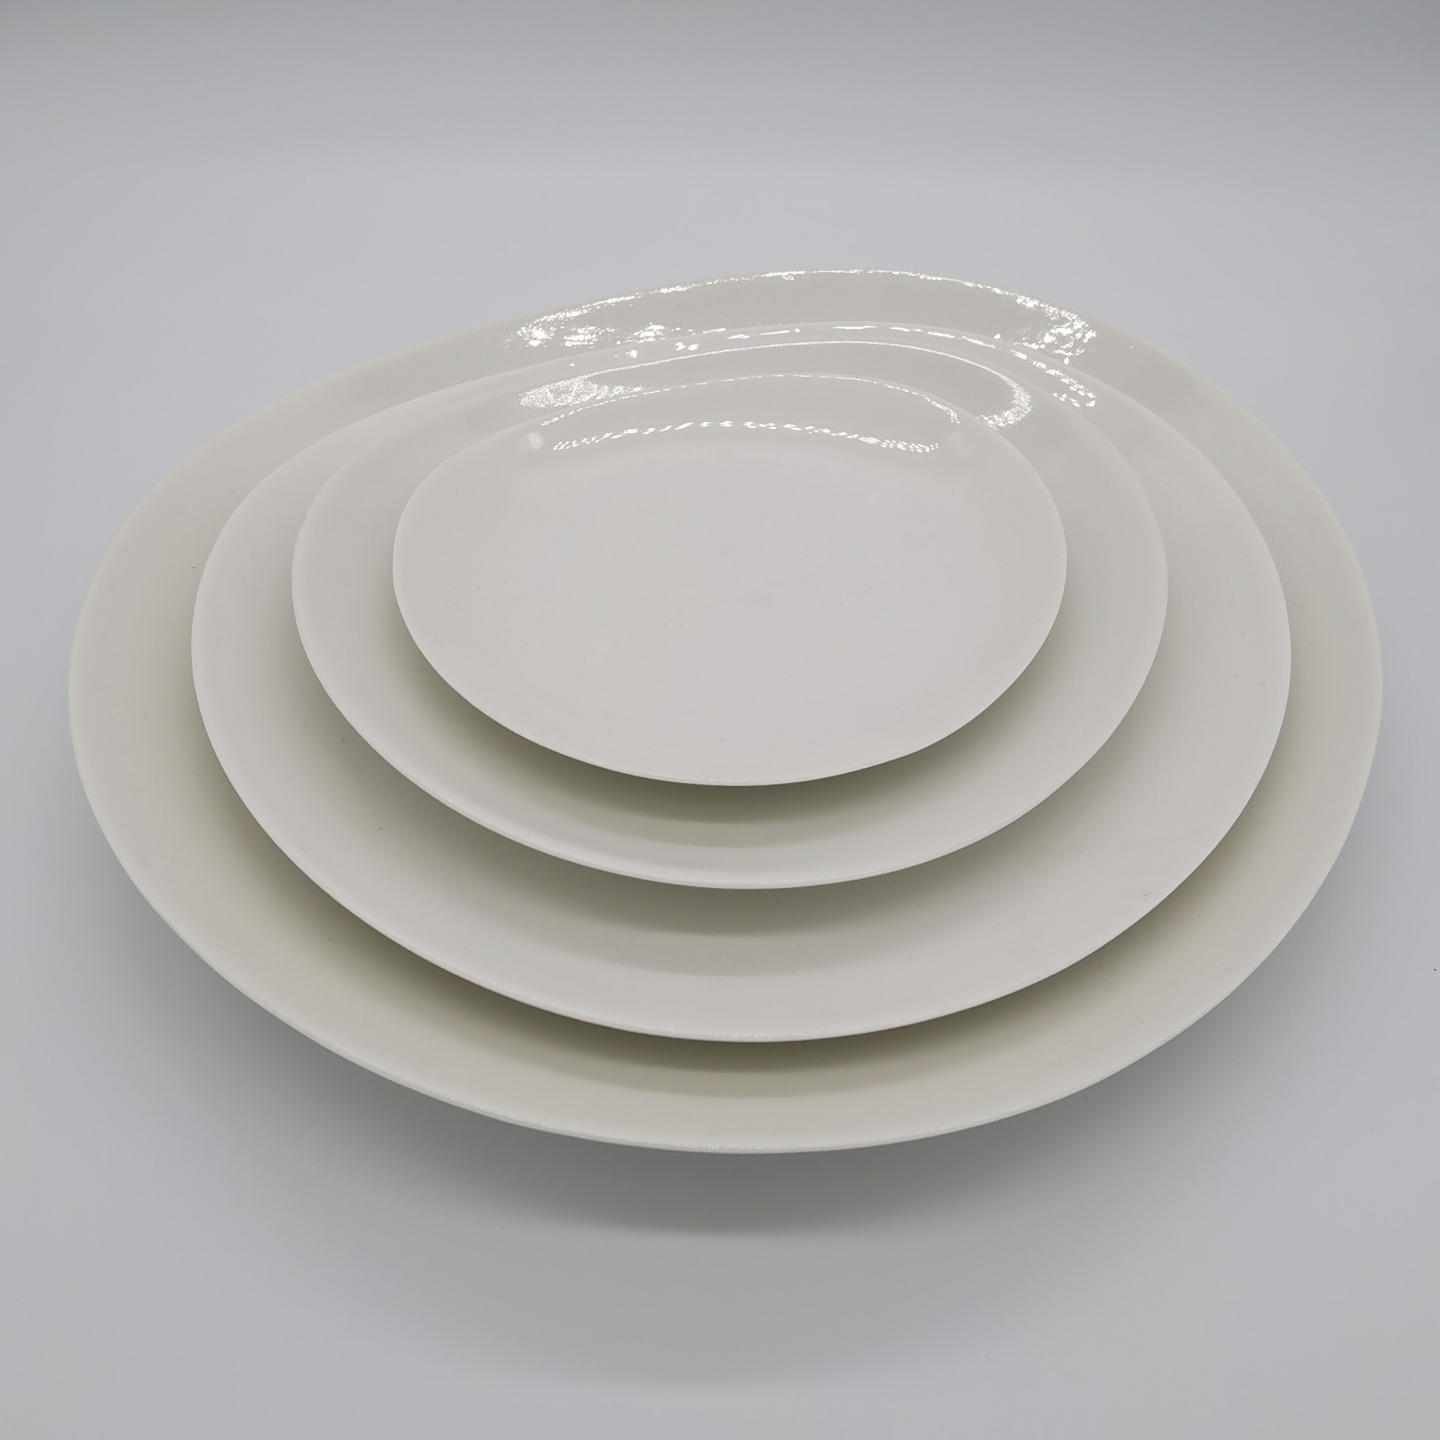 Bone China Free Loops Plate - (15cm)